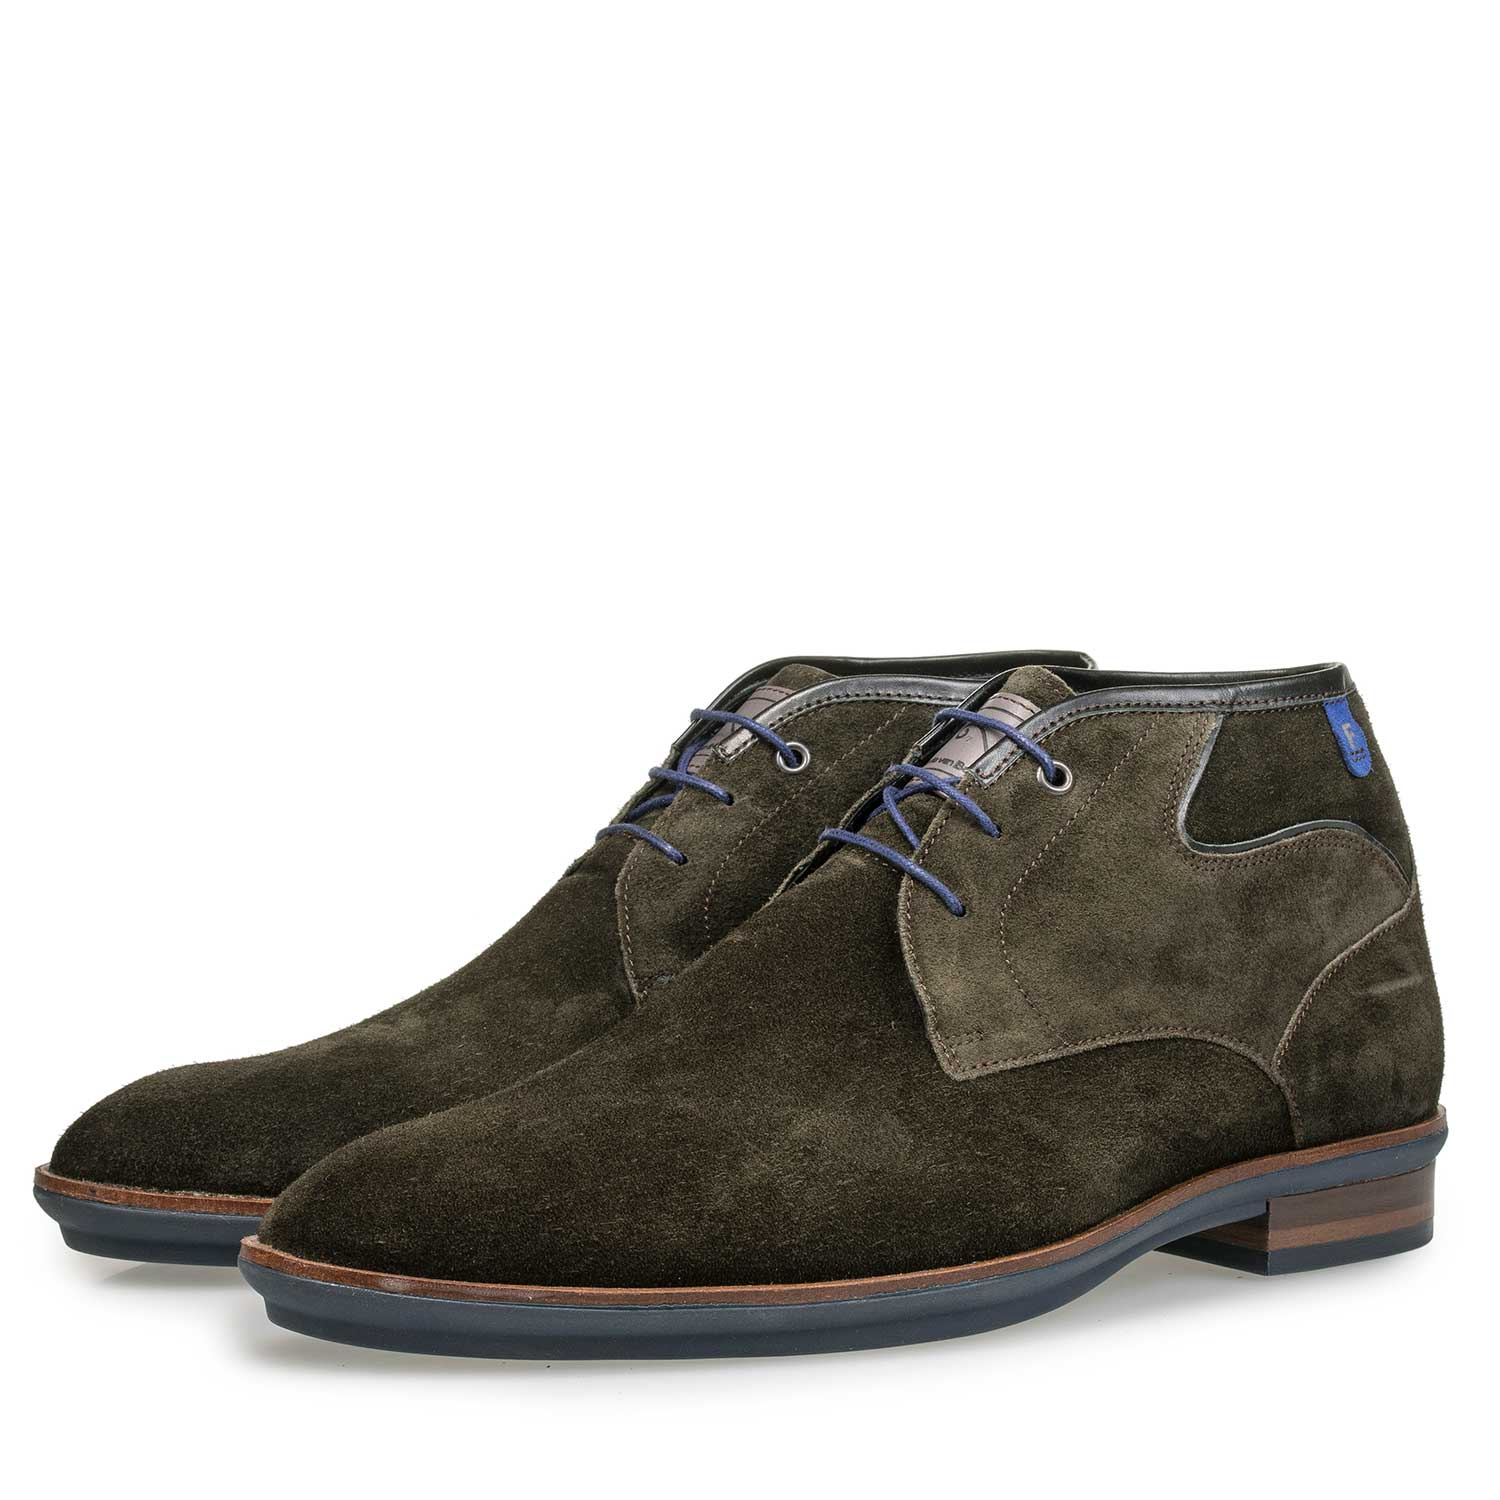 10156/04 - Olive green calf suede leather lace boot